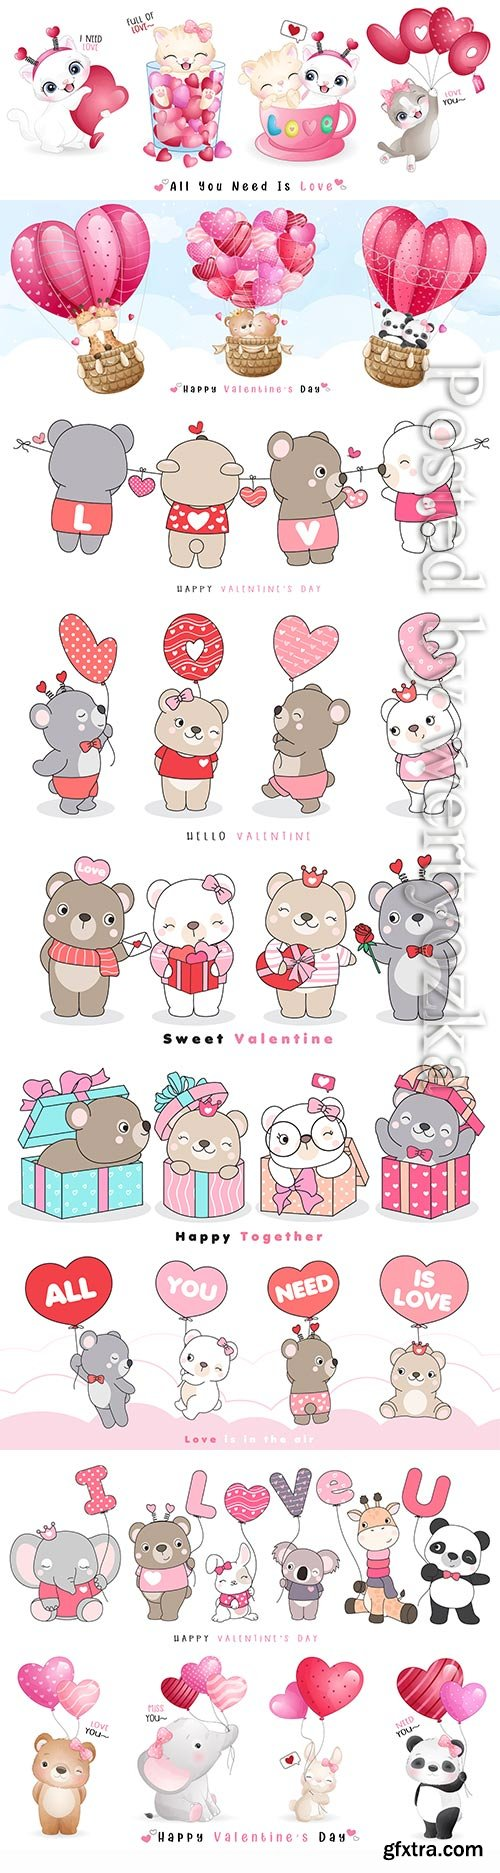 Cute funny doodle animals for valentine's day illustration